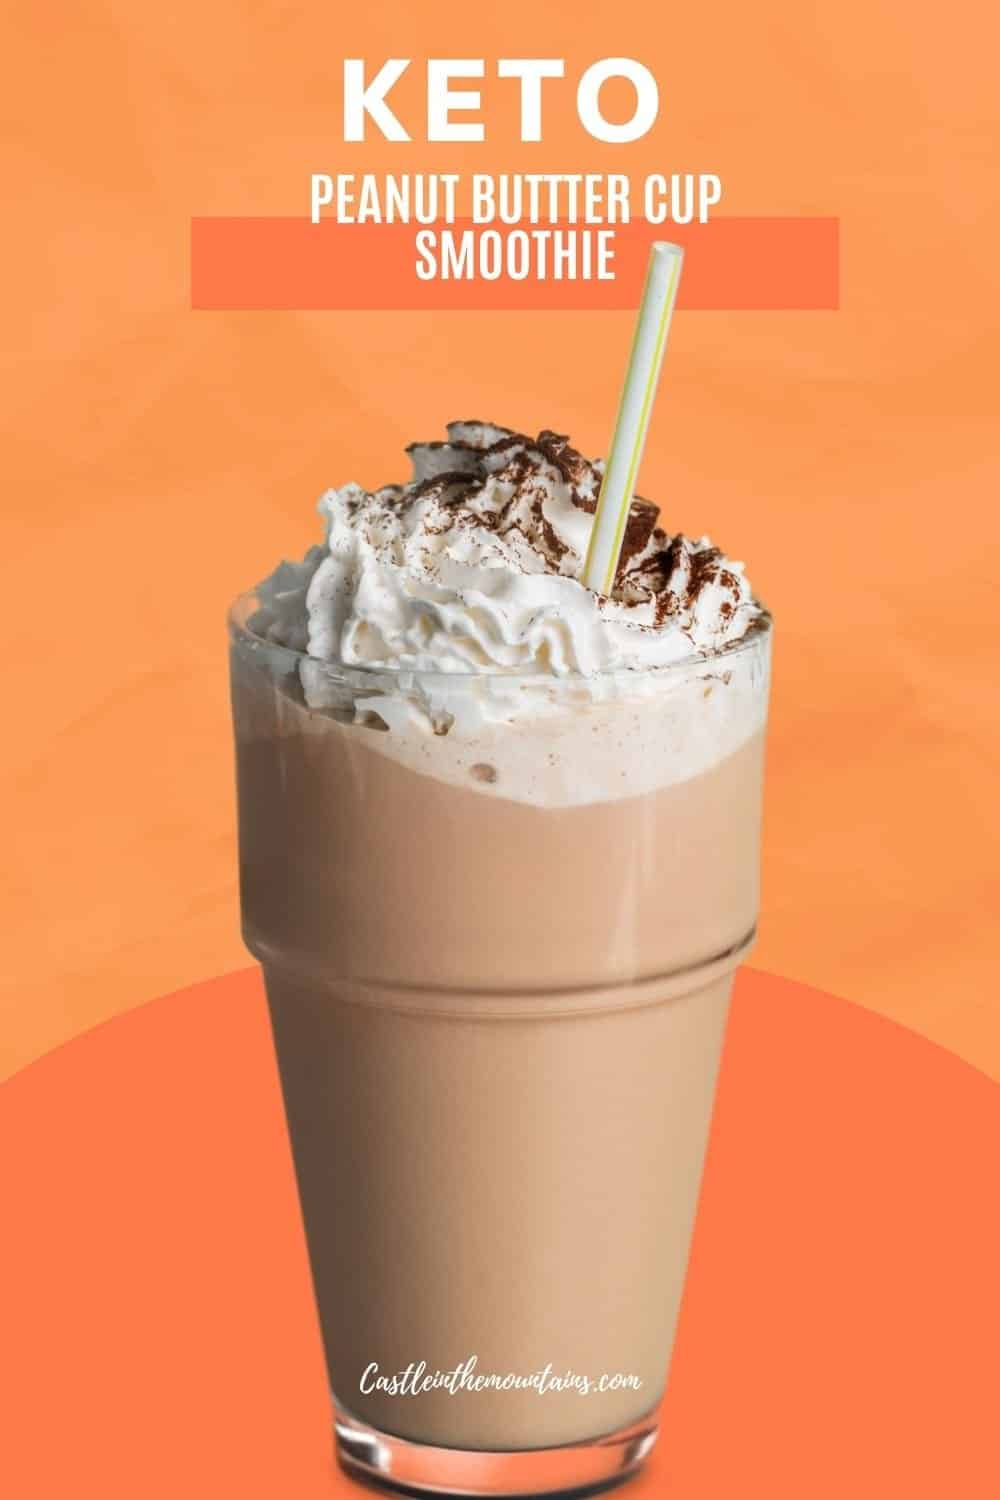 Peanut Butter Cup Smoothie - How to make the best low carb smoothie ever!